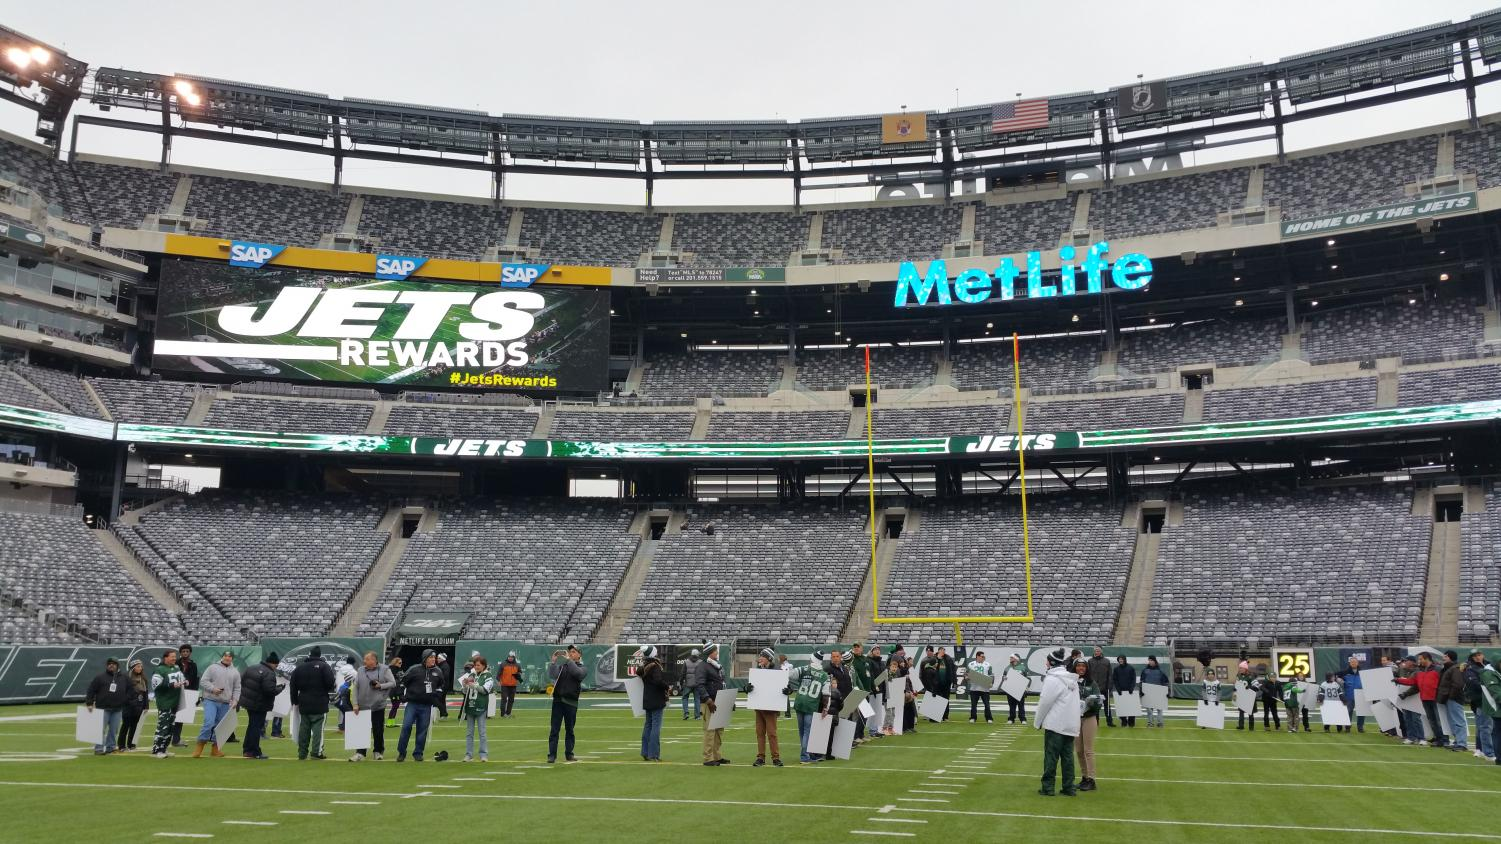 Despite fundraising efforts, no tickets were sold from the collaboration effort between the NY Jets and the Glen Rock HSA.